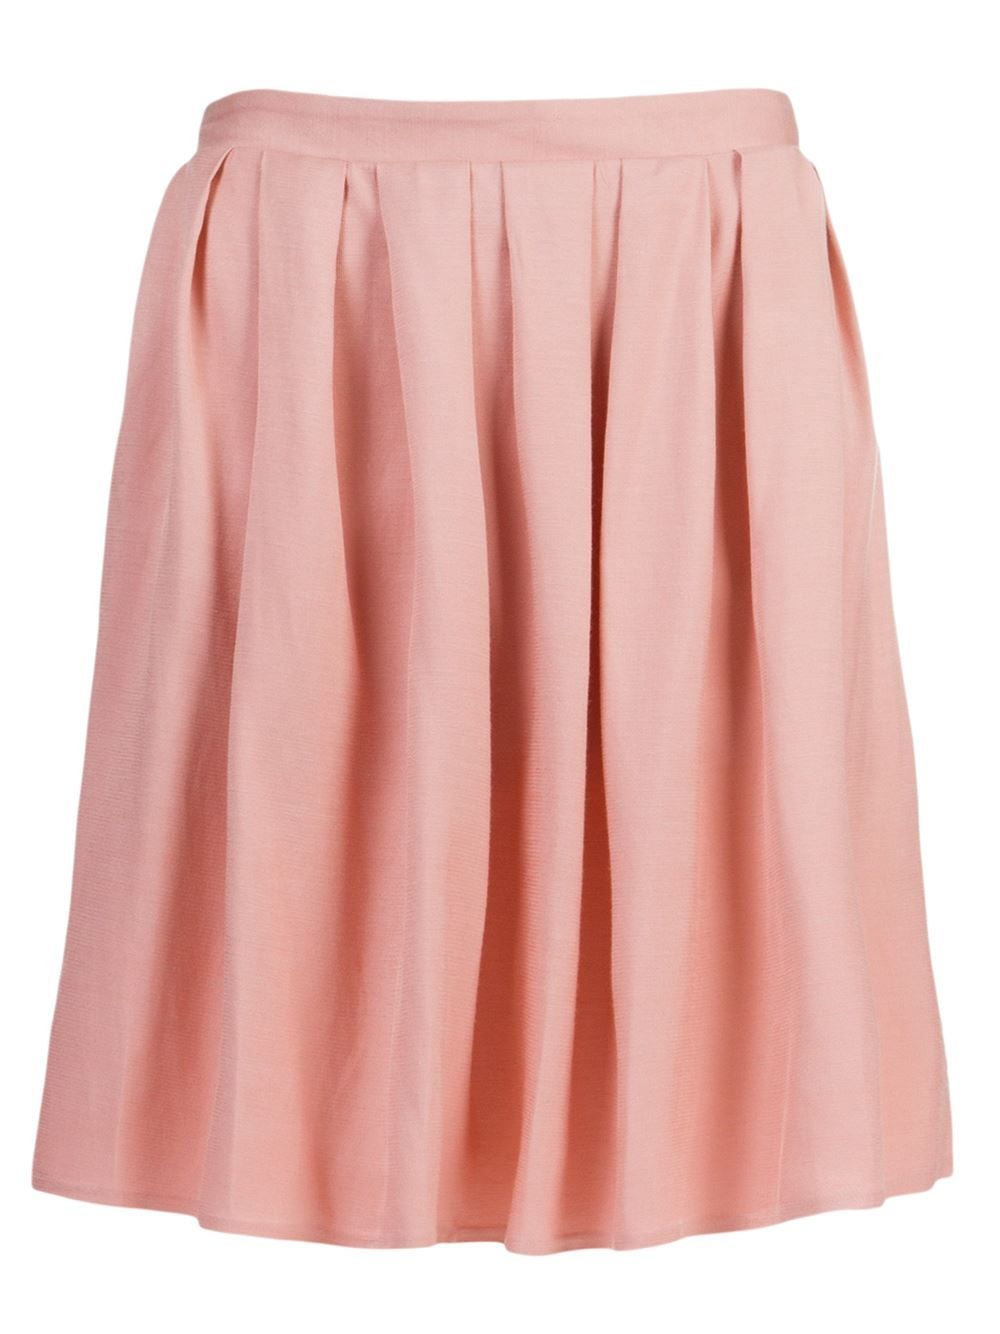 Emannuelle Junqueira Pleated Skirt - Destination Brazil - Farfetch.com